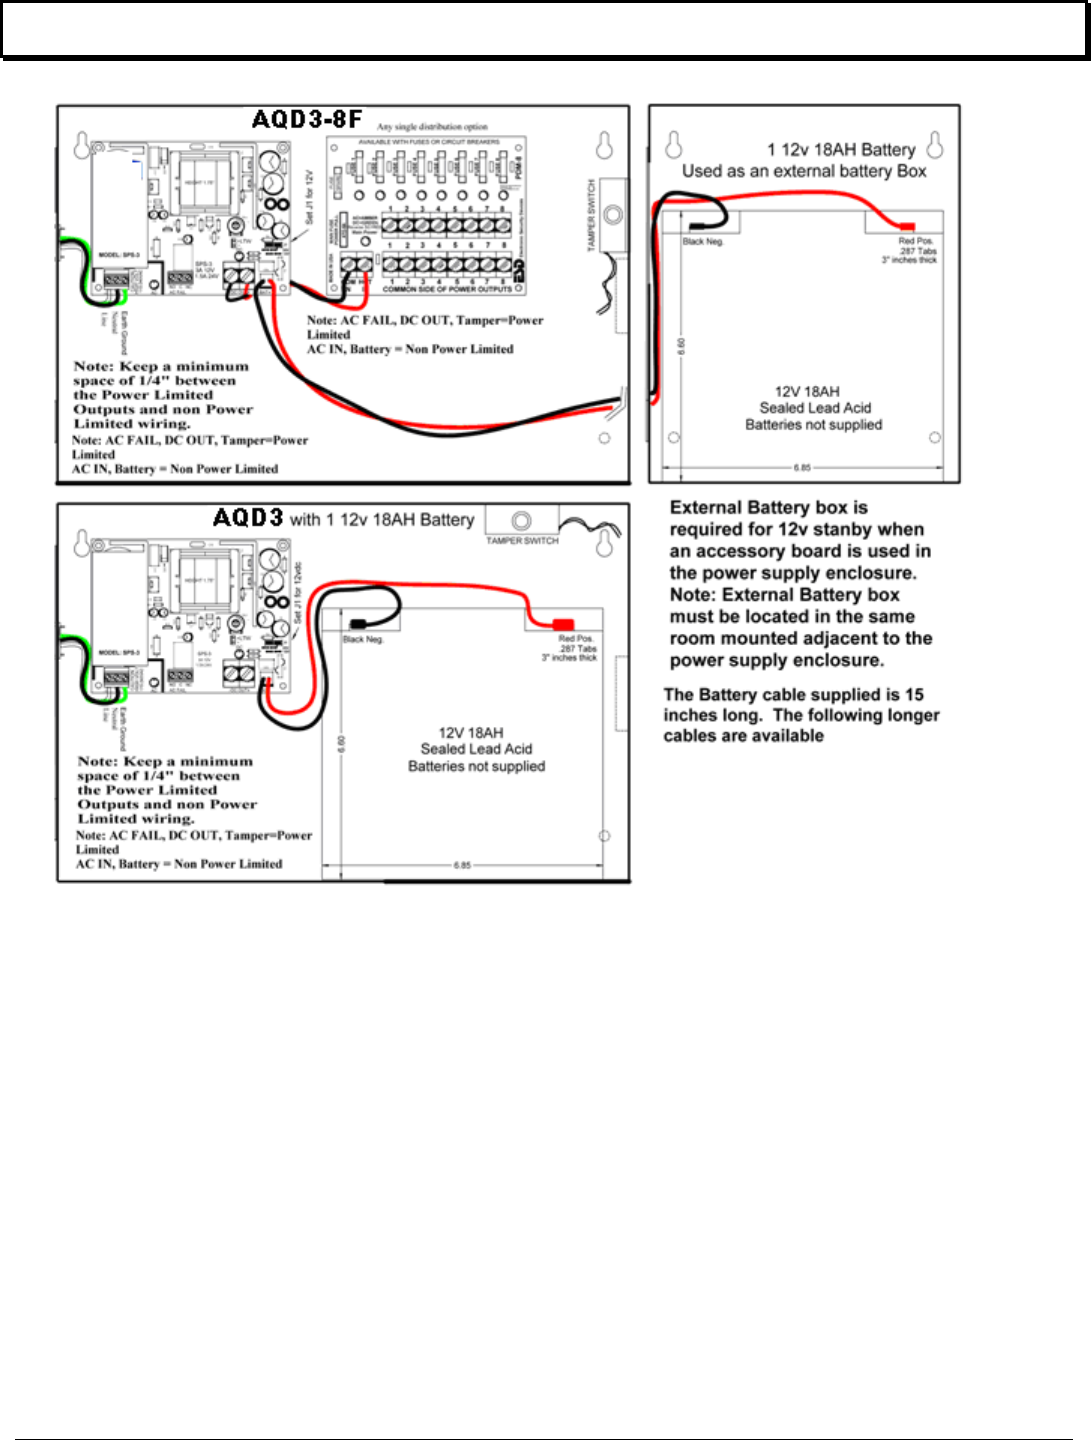 Securitron Aqd3 500 33000 A Installation Guide I Tamper Switch Wiring Diagram Series Continued